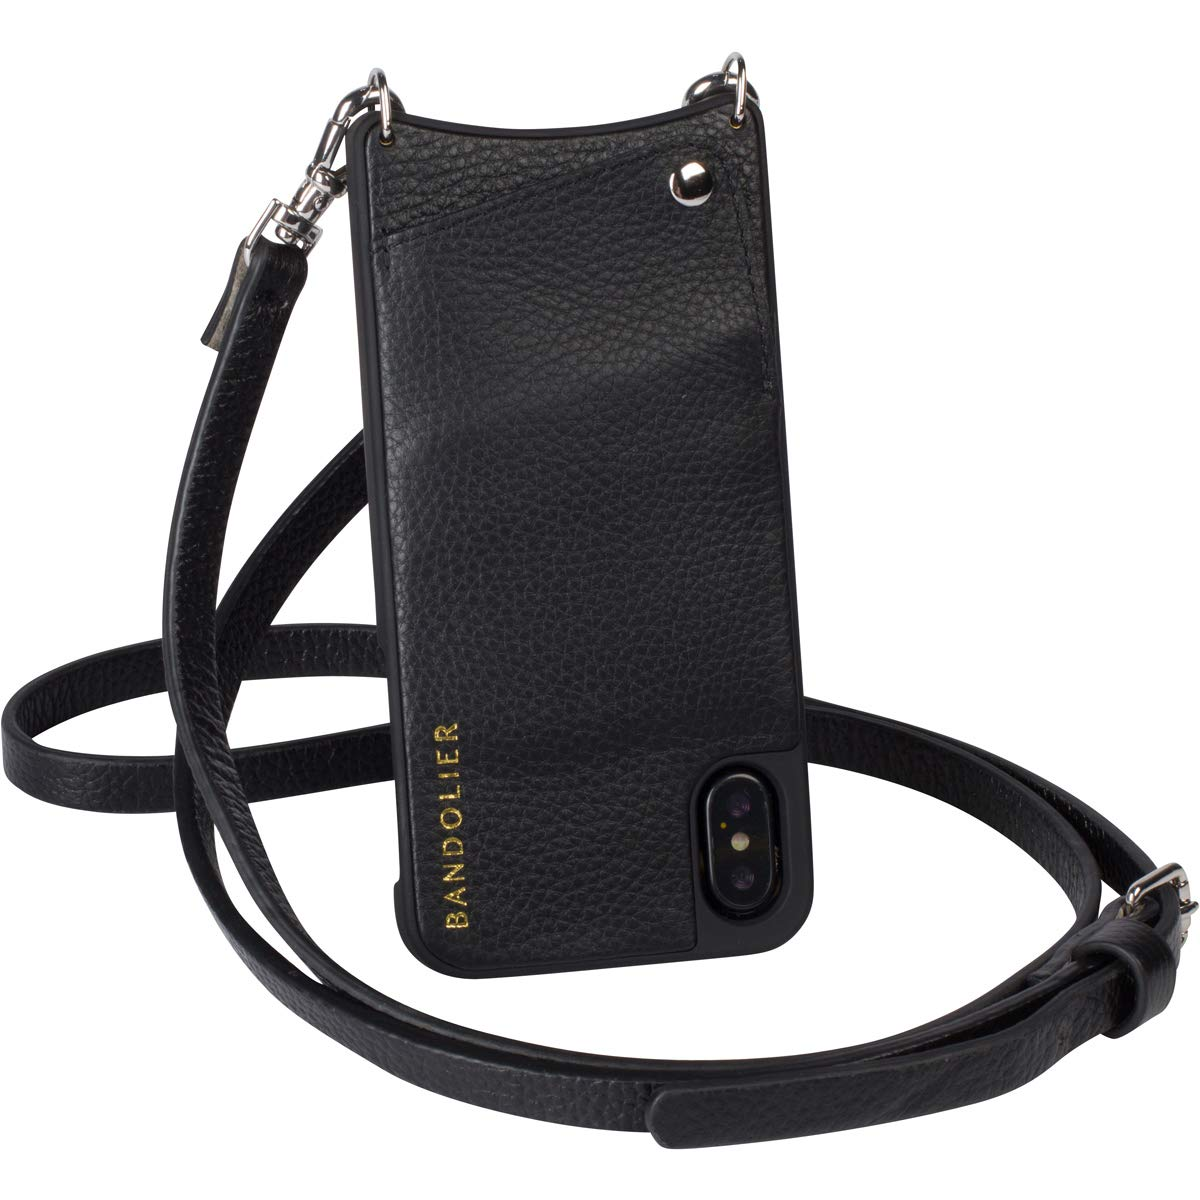 Bandolier [Emma] Crossbody Phone Case and Wallet - Compatible with iPhone Xs Max - Black Leather with Silver Accent